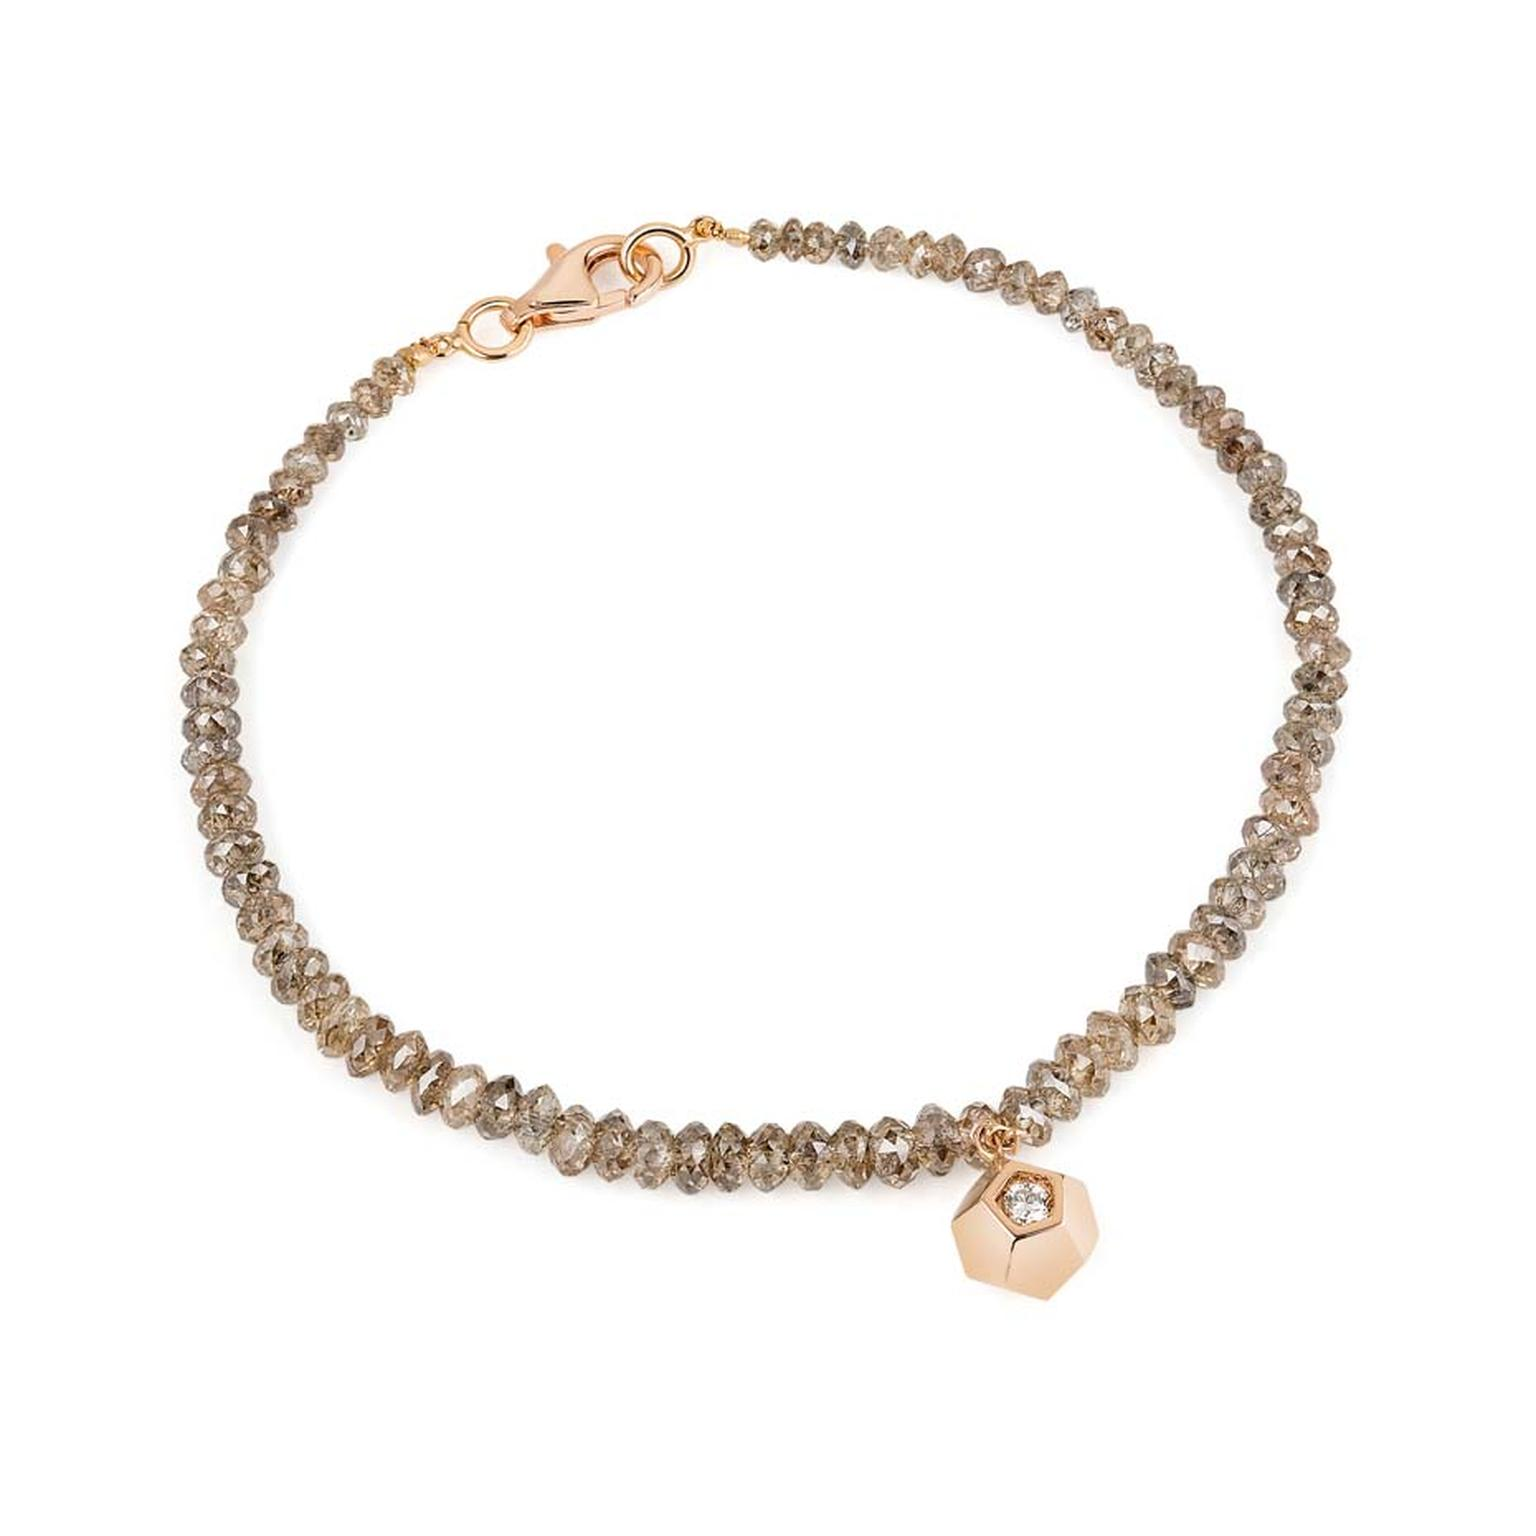 Ornella Lannuzzi 'Rock It' charm bracelet, with diamond beads and two brilliant cut diamonds set in rose gold.